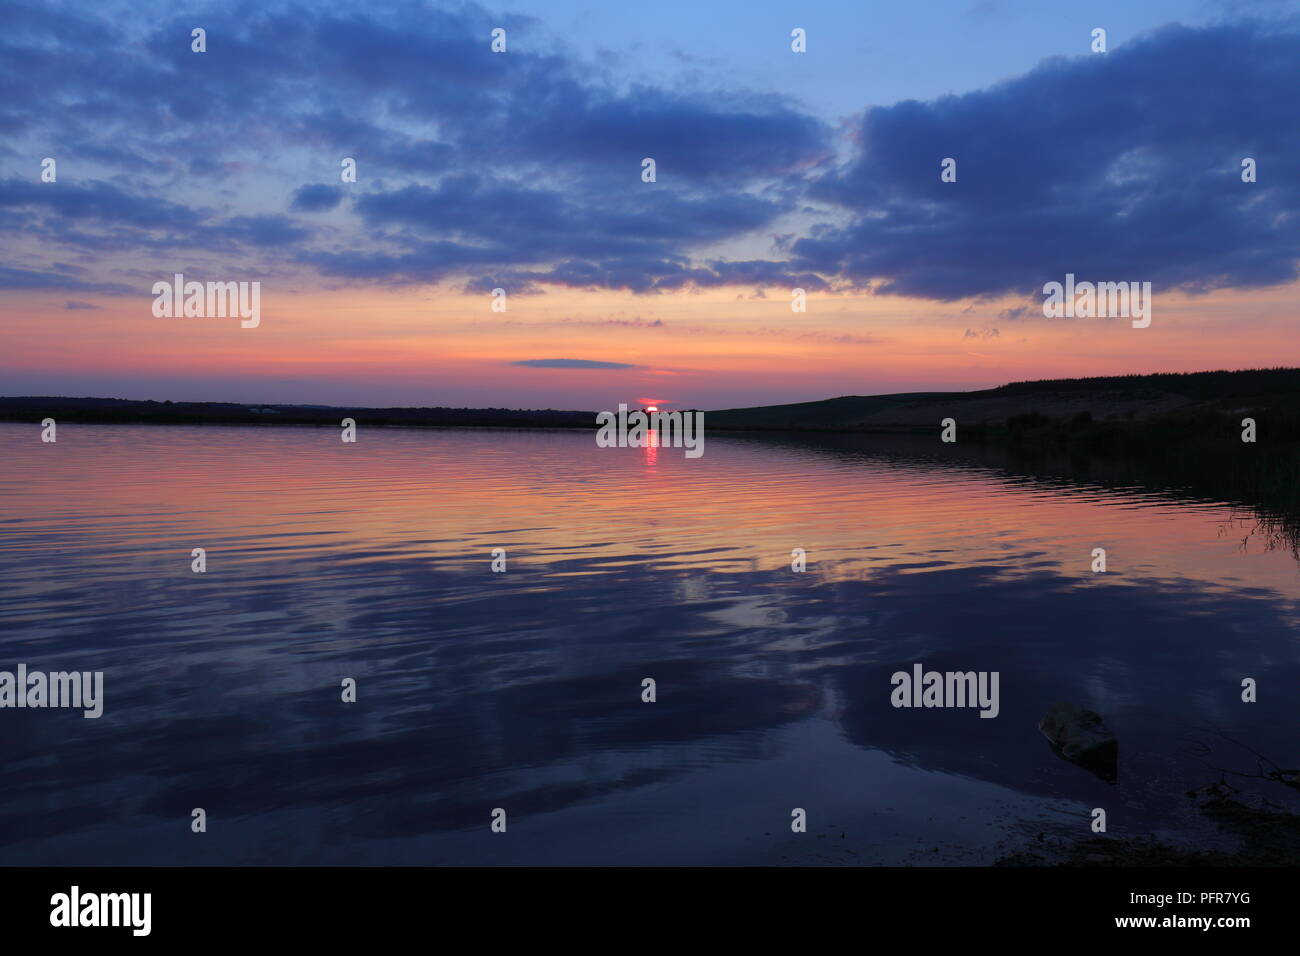 Calm water reflections of the sun setting over RSPB St Aidan's Nature Park between Leeds & Castleford - Stock Image